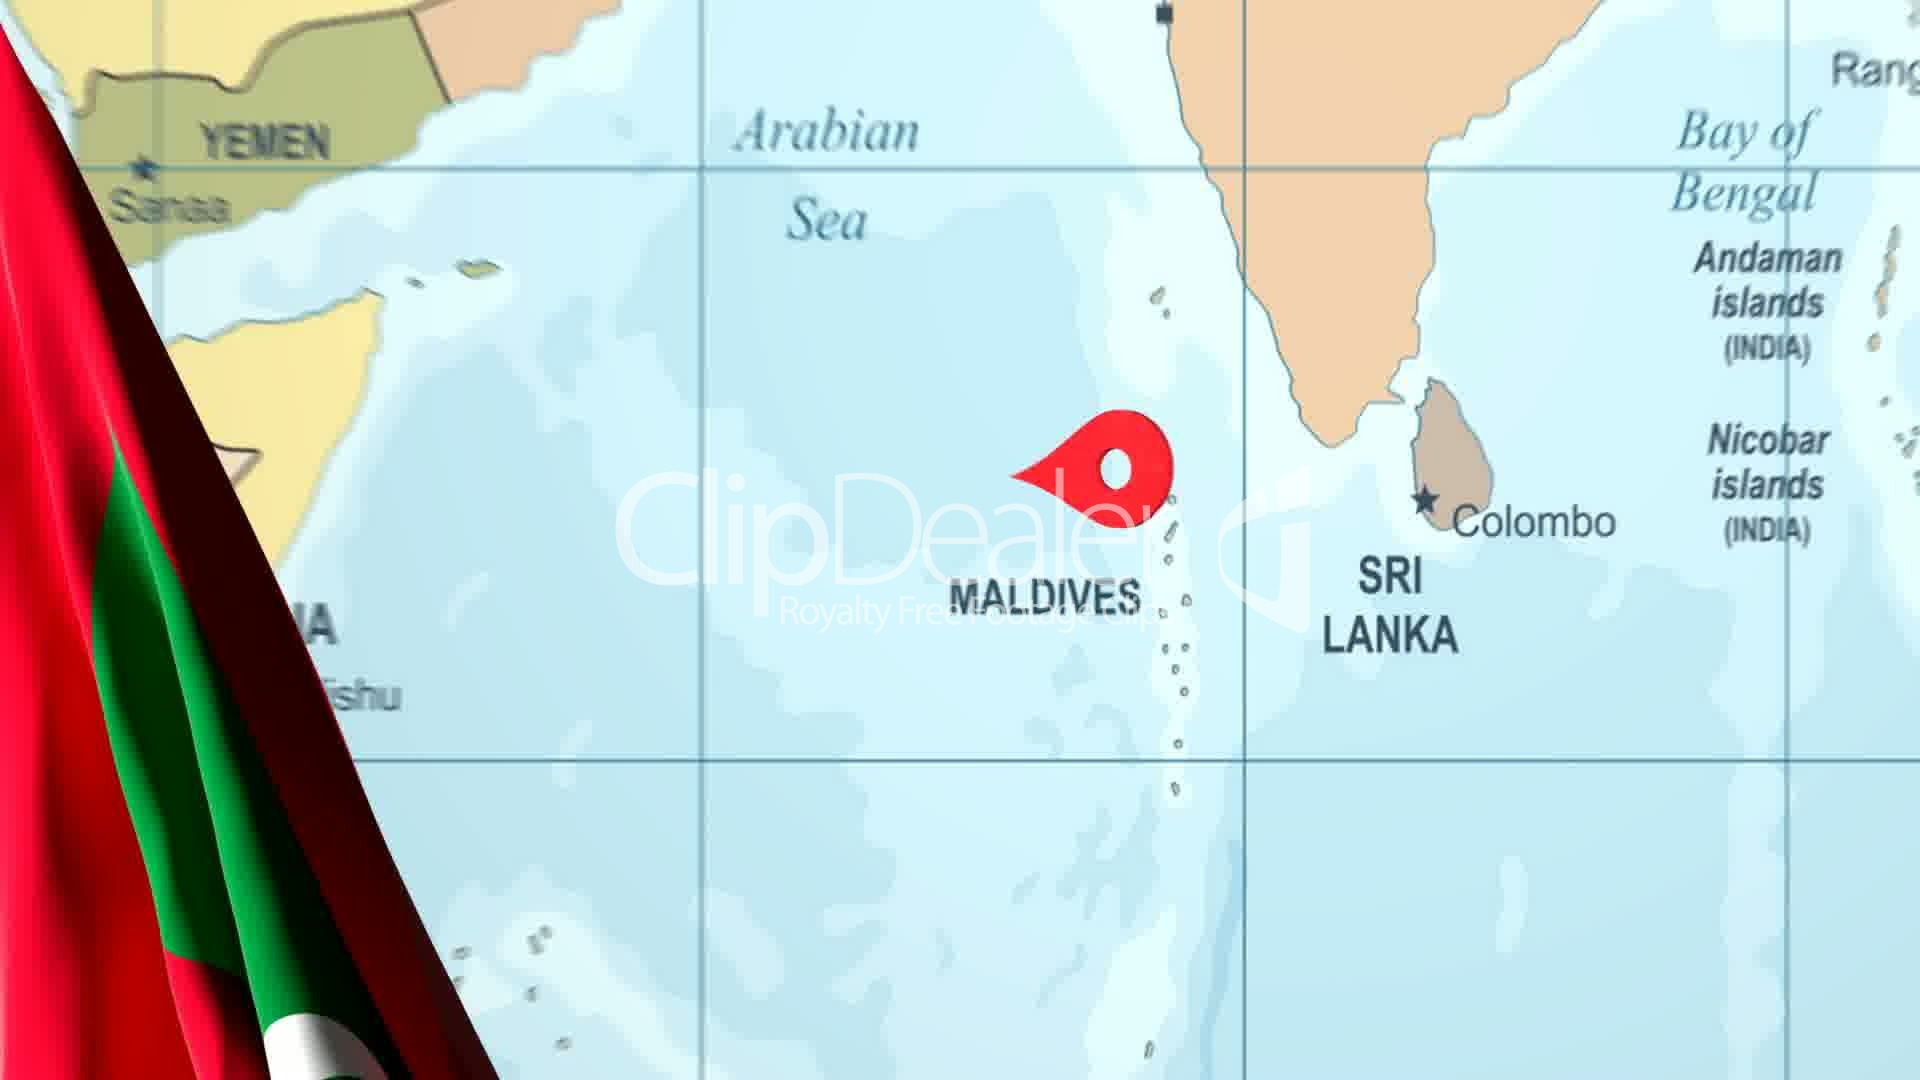 Animated Flag of the Maldives With a Pin on a Worldmap ... on indonesia world map, mauritania world map, dubai world map, burkina faso world map, china world map, costa rica world map, greece world map, tahiti world map, timor-leste world map, cook islands world map, east timor world map, barbados world map, taiwan world map, fiji world map, malawi world map, myanmar world map, new zealand world map, bora bora world map, algeria world map, hong kong world map,